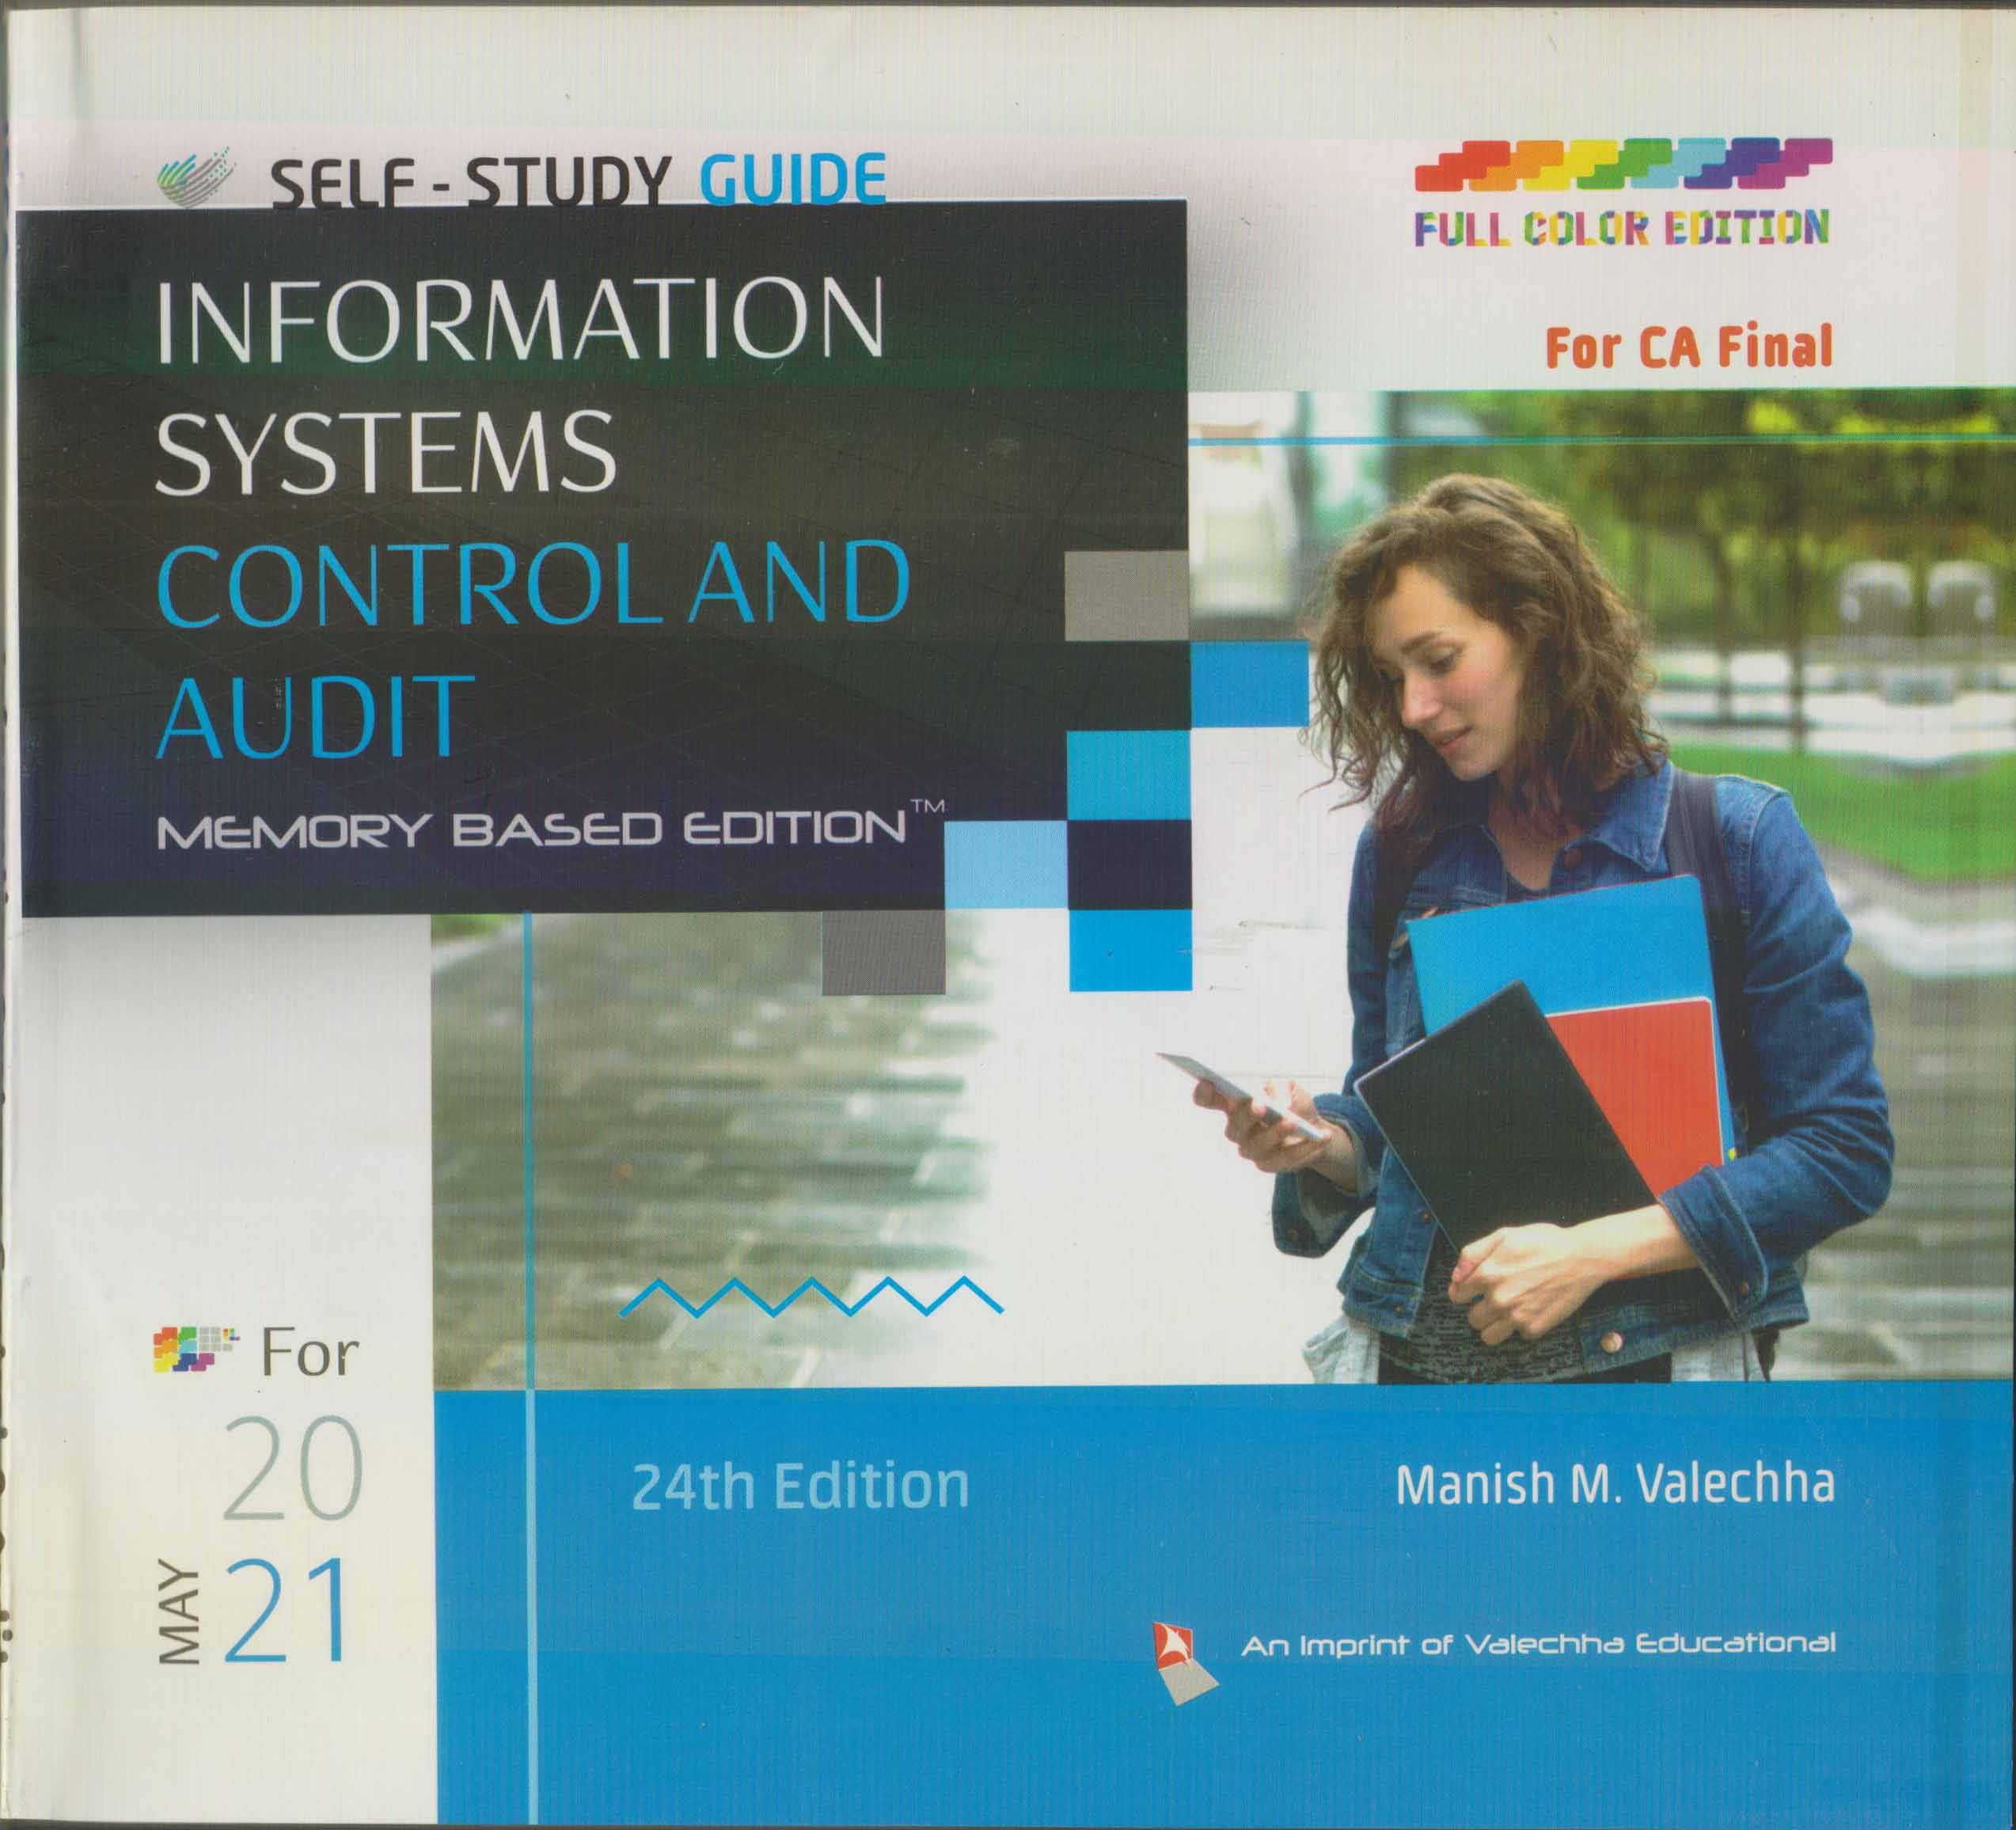 Valechha Educational Self-Study Guide On Information Systems Control And Audit (ISCA) Memory Based Edition for CA Final By Manish Valechha for 2021 exams